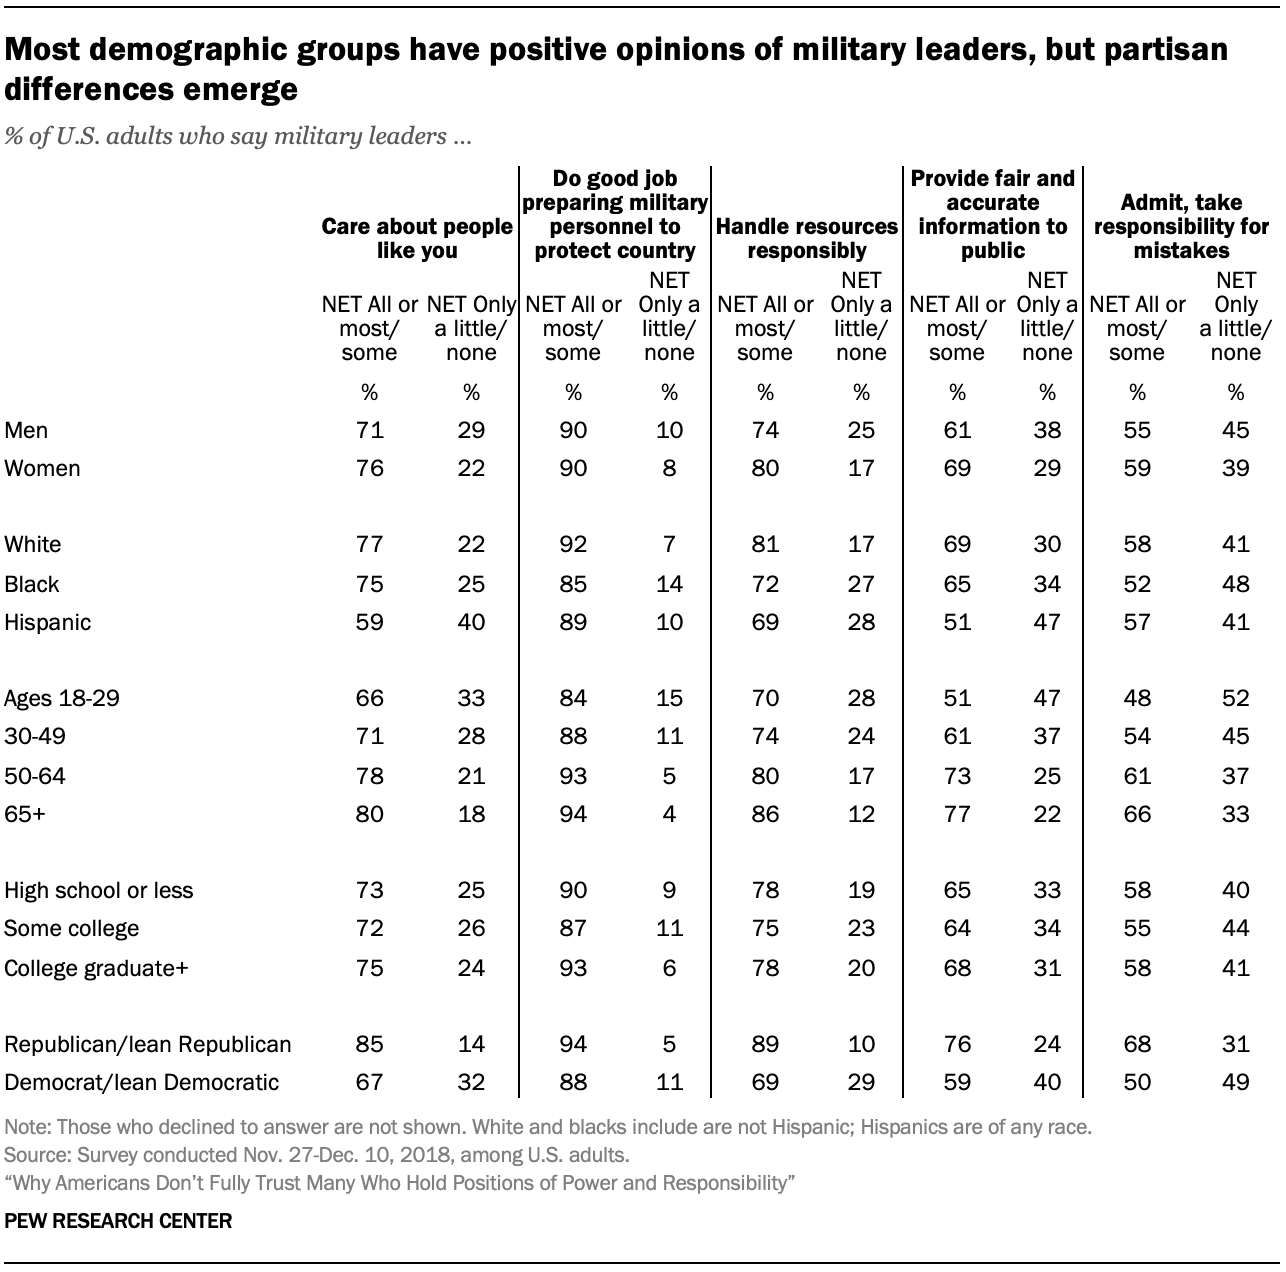 Most demographic groups have positive opinions of military leaders, but partisan differences emerge